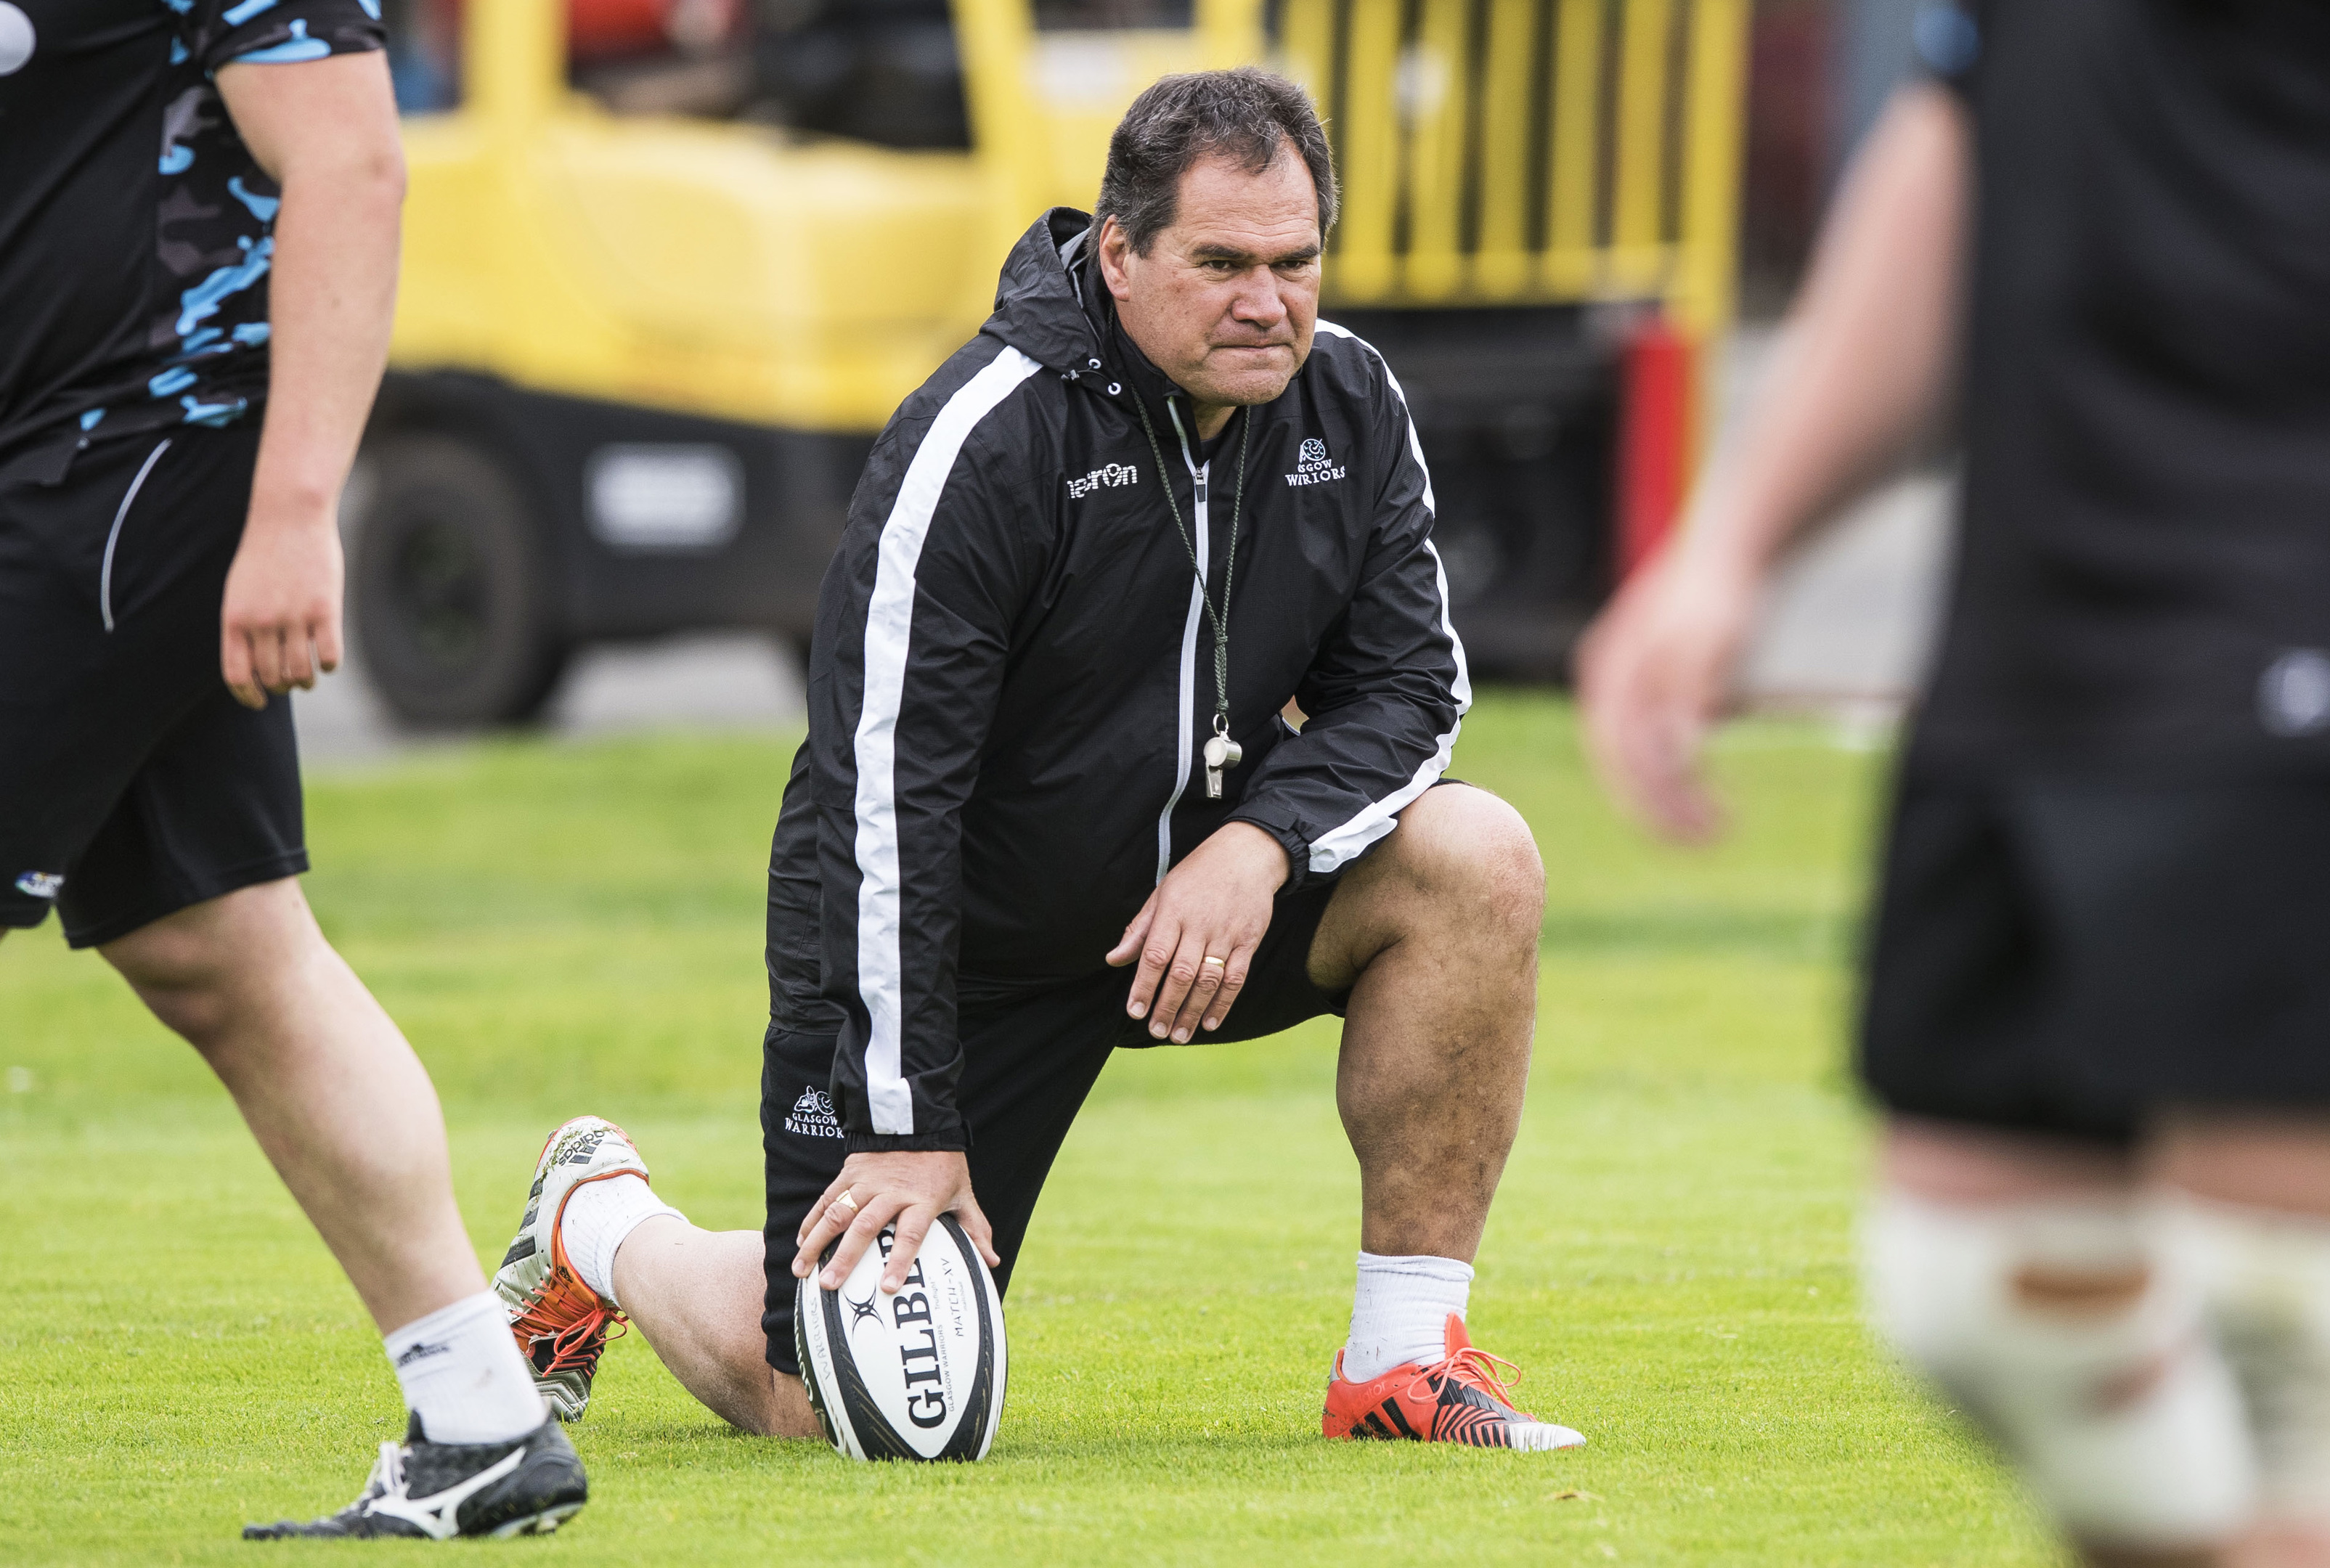 Glasgow Warriors' head coach Dave Rennie.